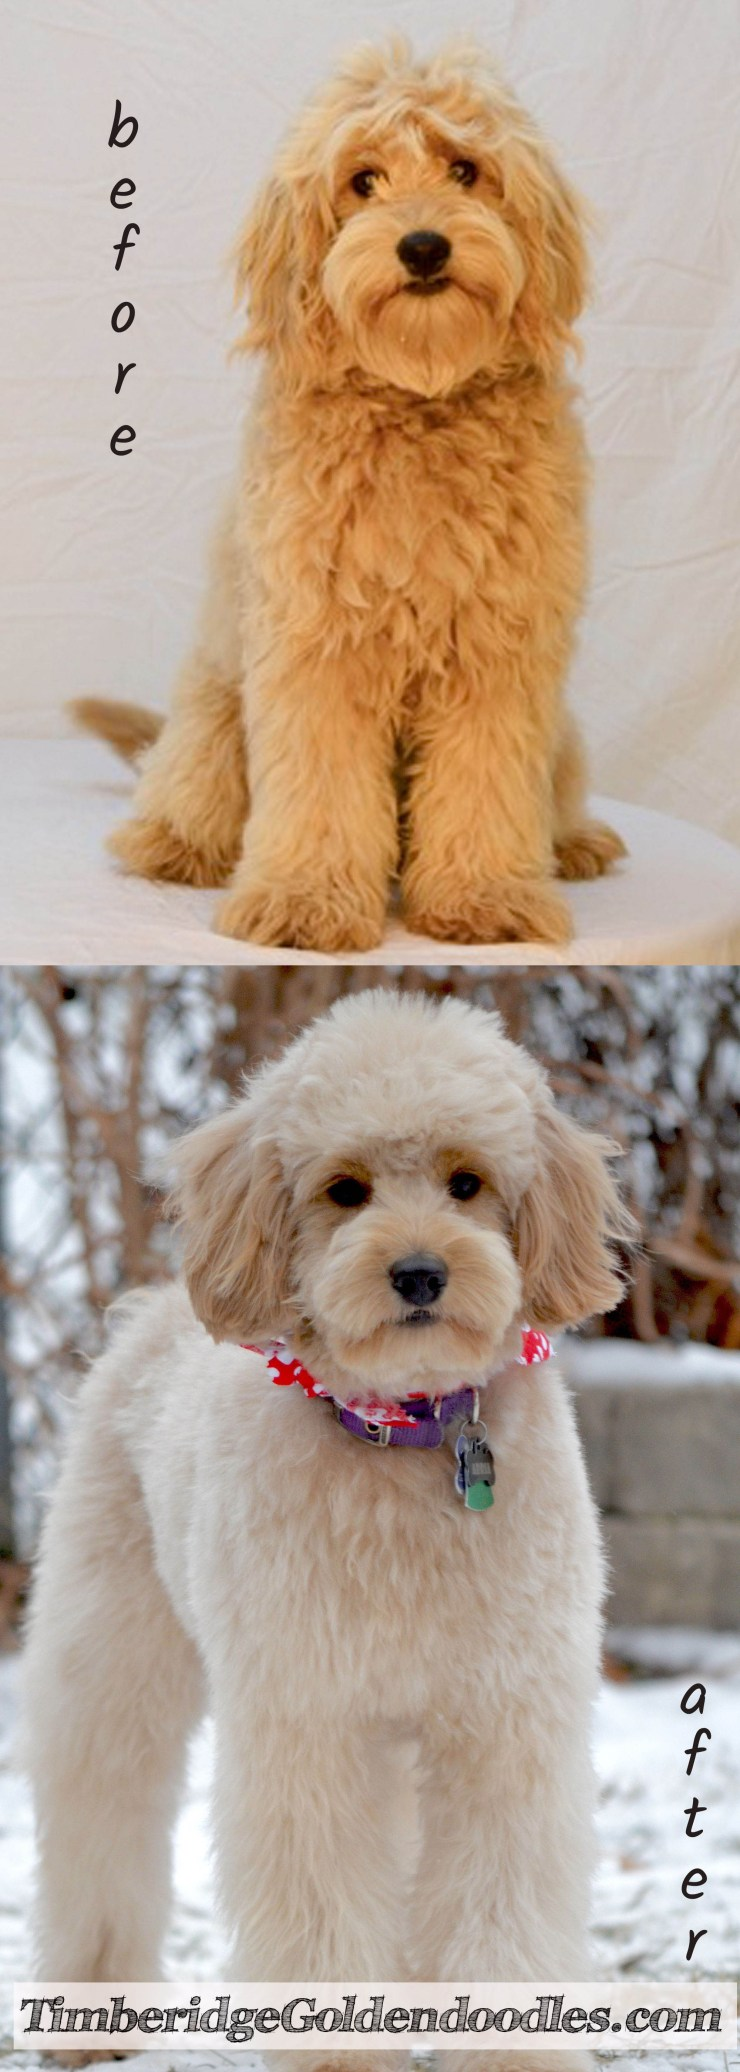 goldendoodle haircut before and after pictures goldendoodle grooming timberidge goldendoodles